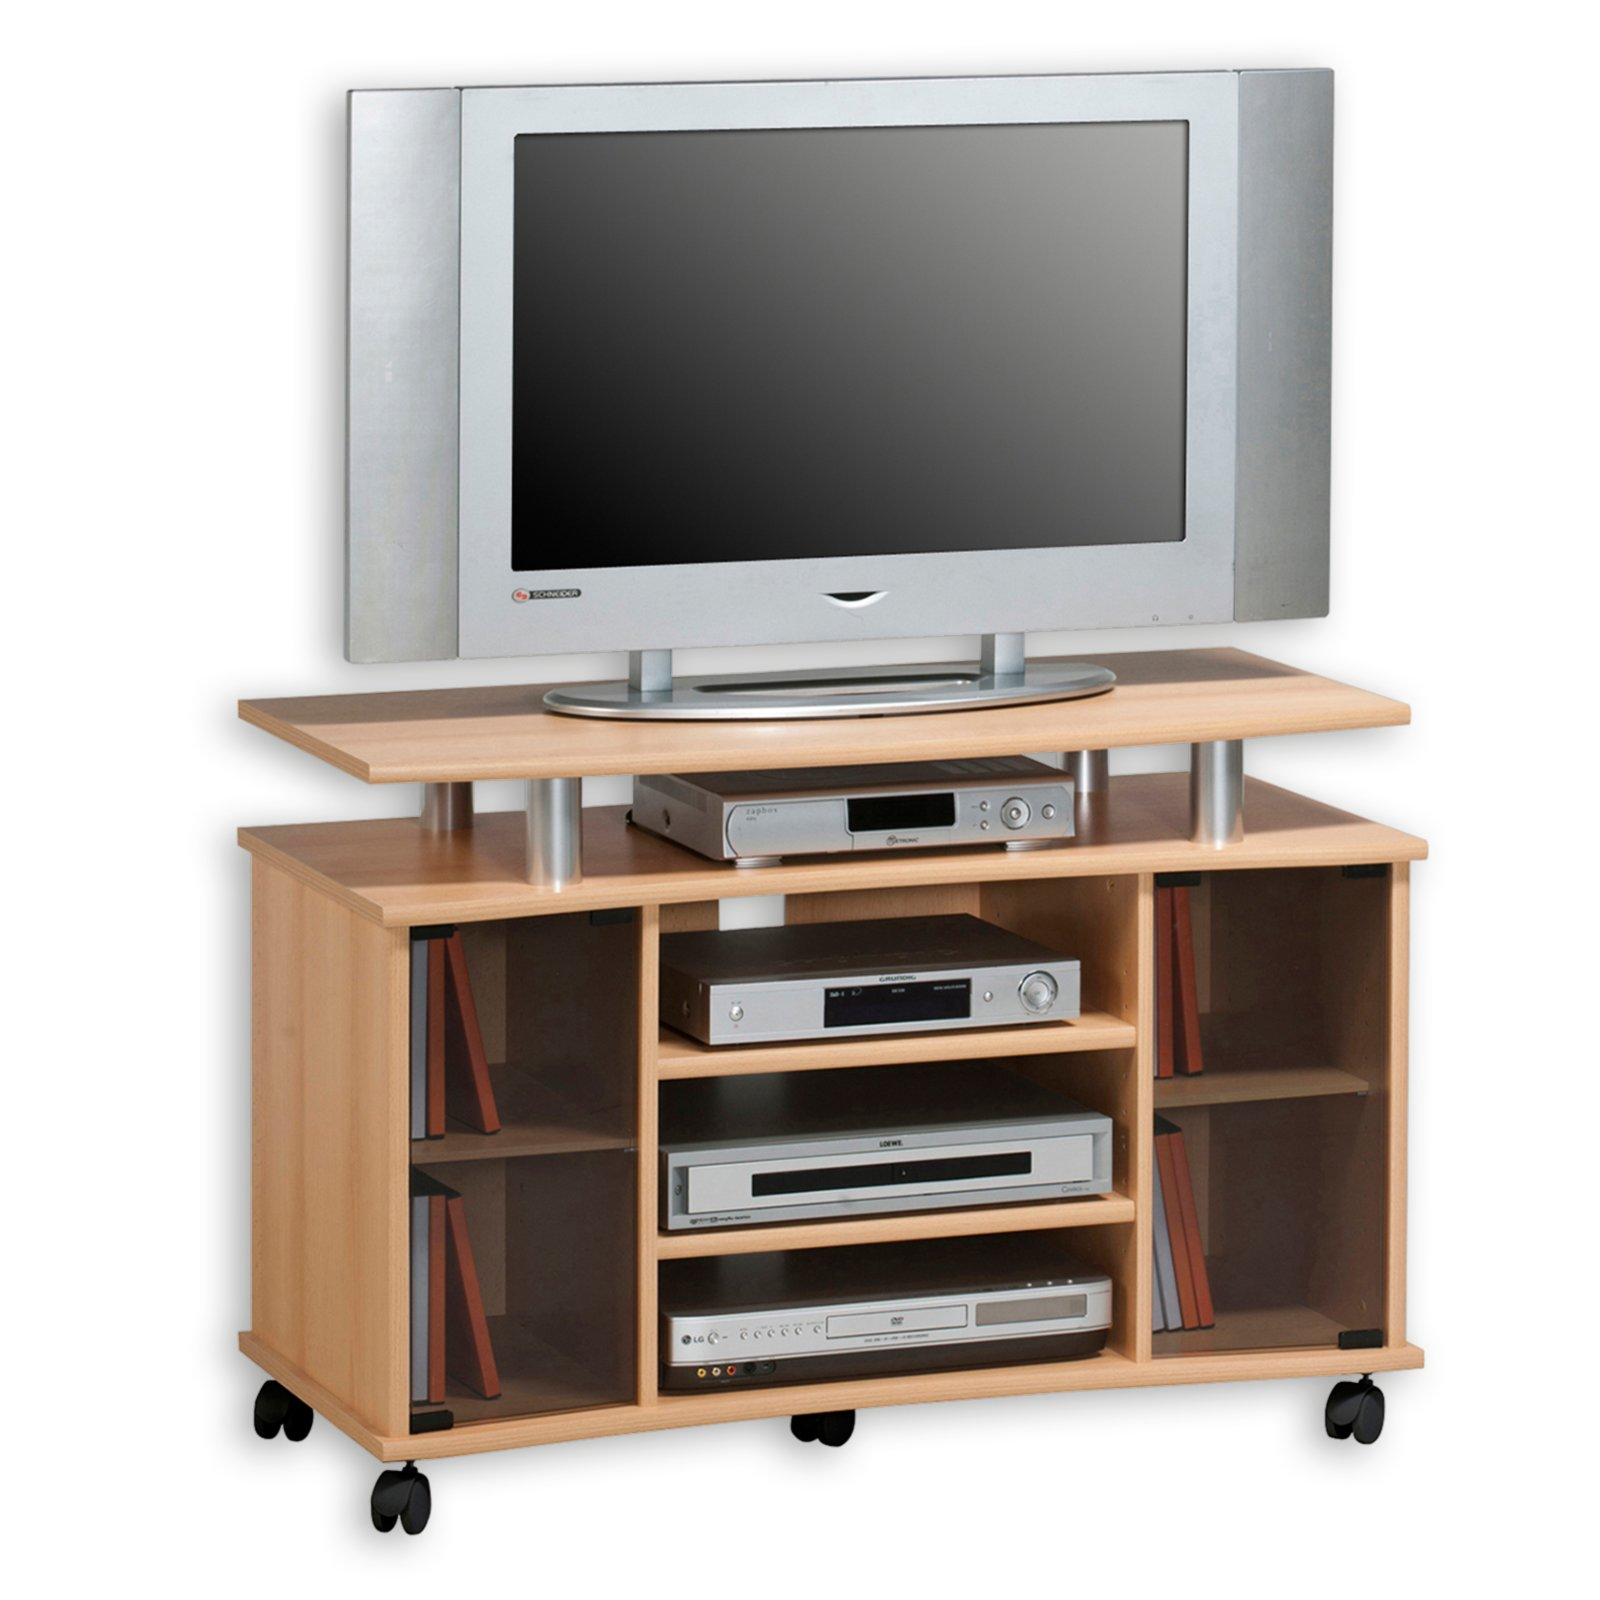 tv rack buche alu glast ren tv racks tv hifi. Black Bedroom Furniture Sets. Home Design Ideas